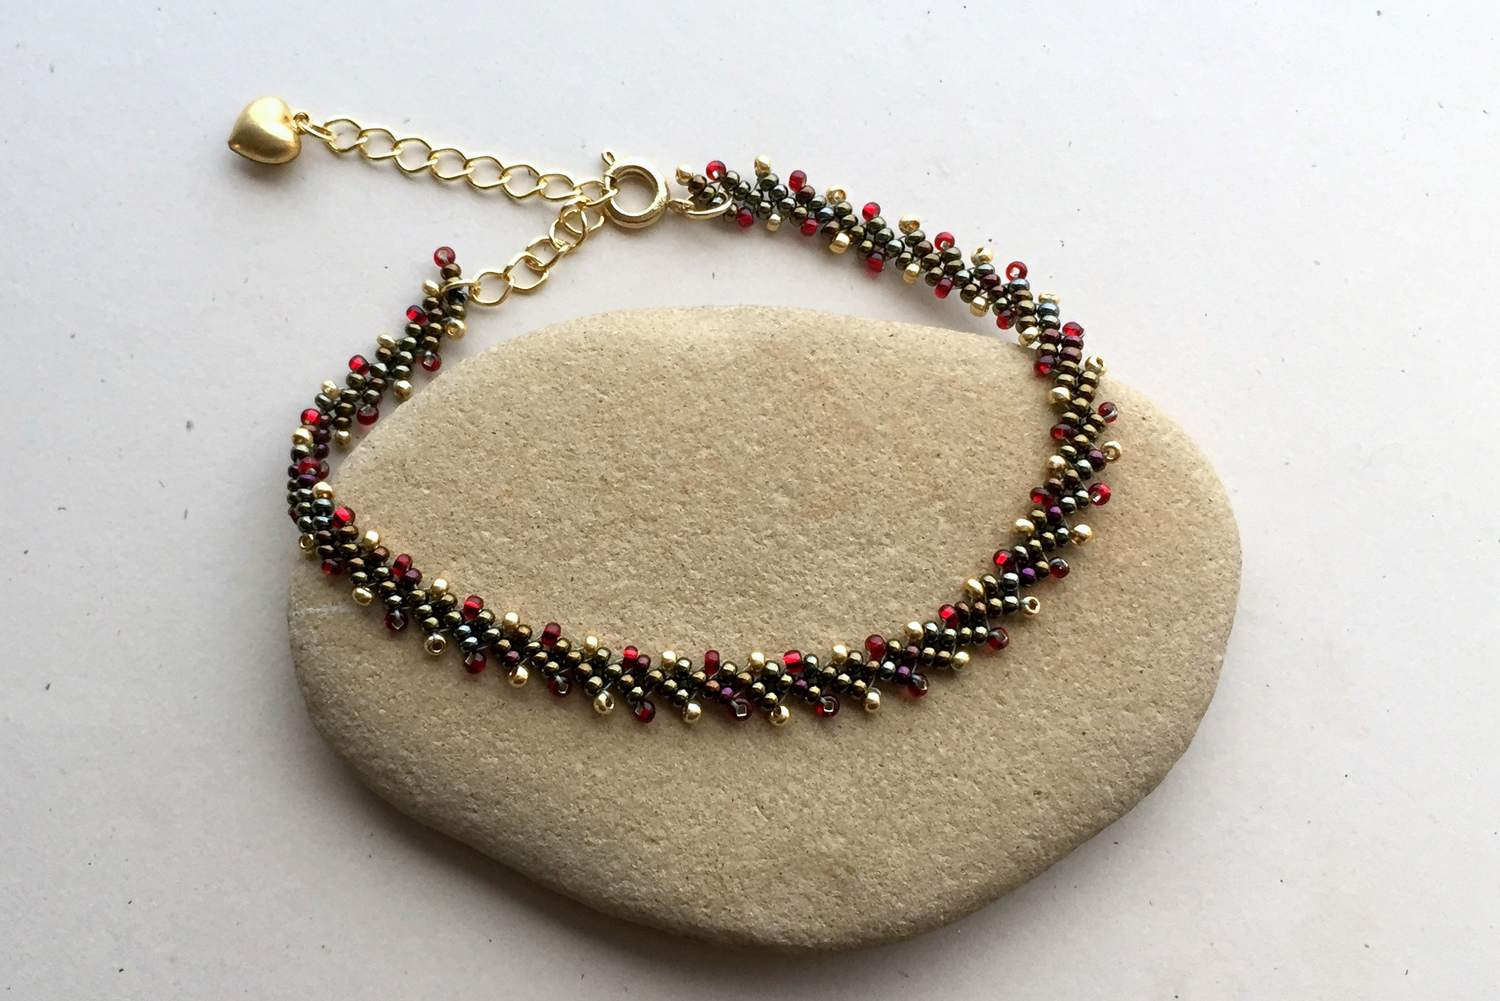 These Beaded Bracelet Projects Are Easy